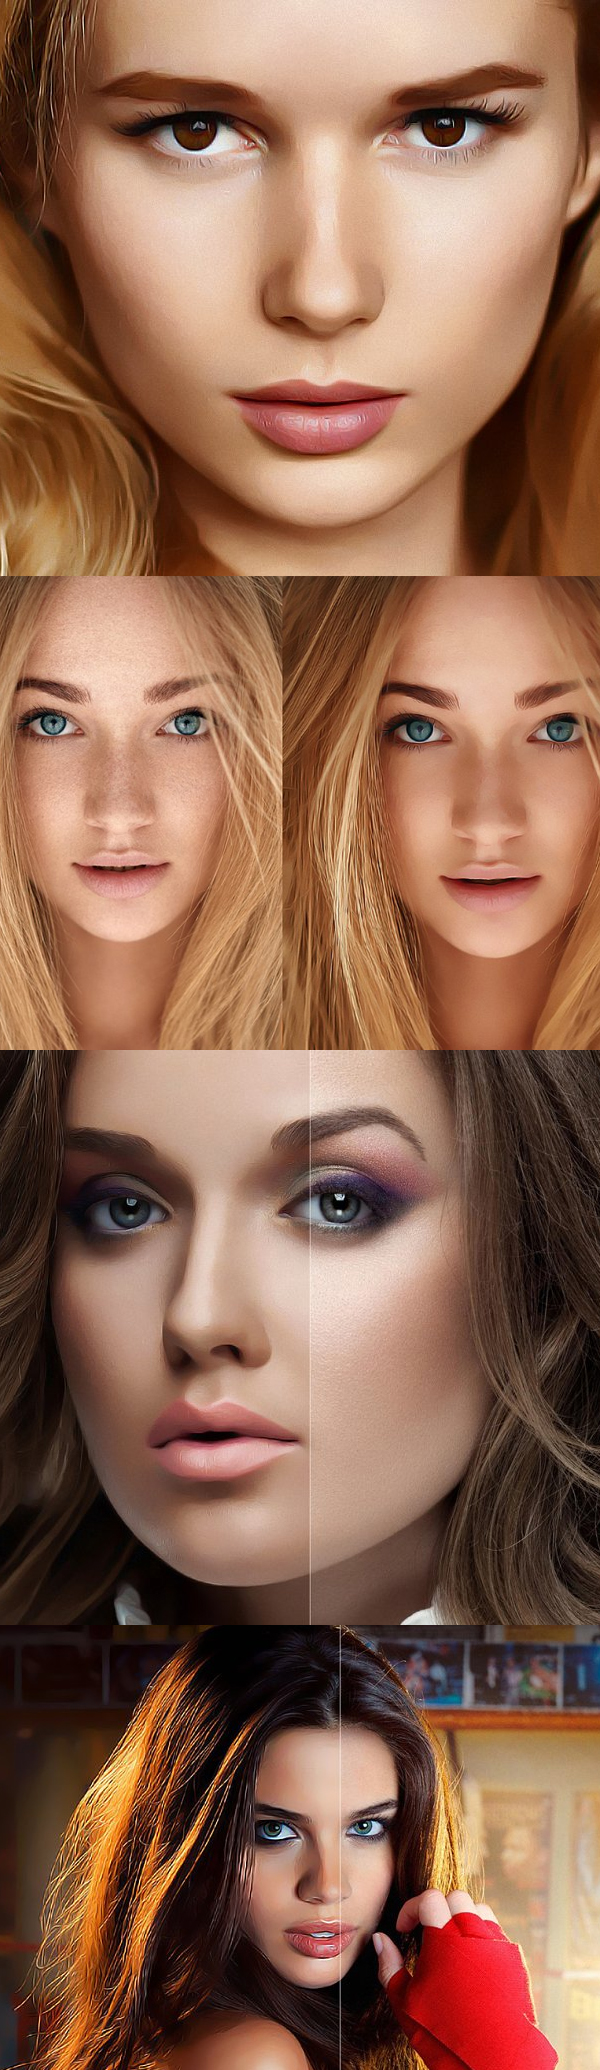 Retouch Painting Photoshop Action